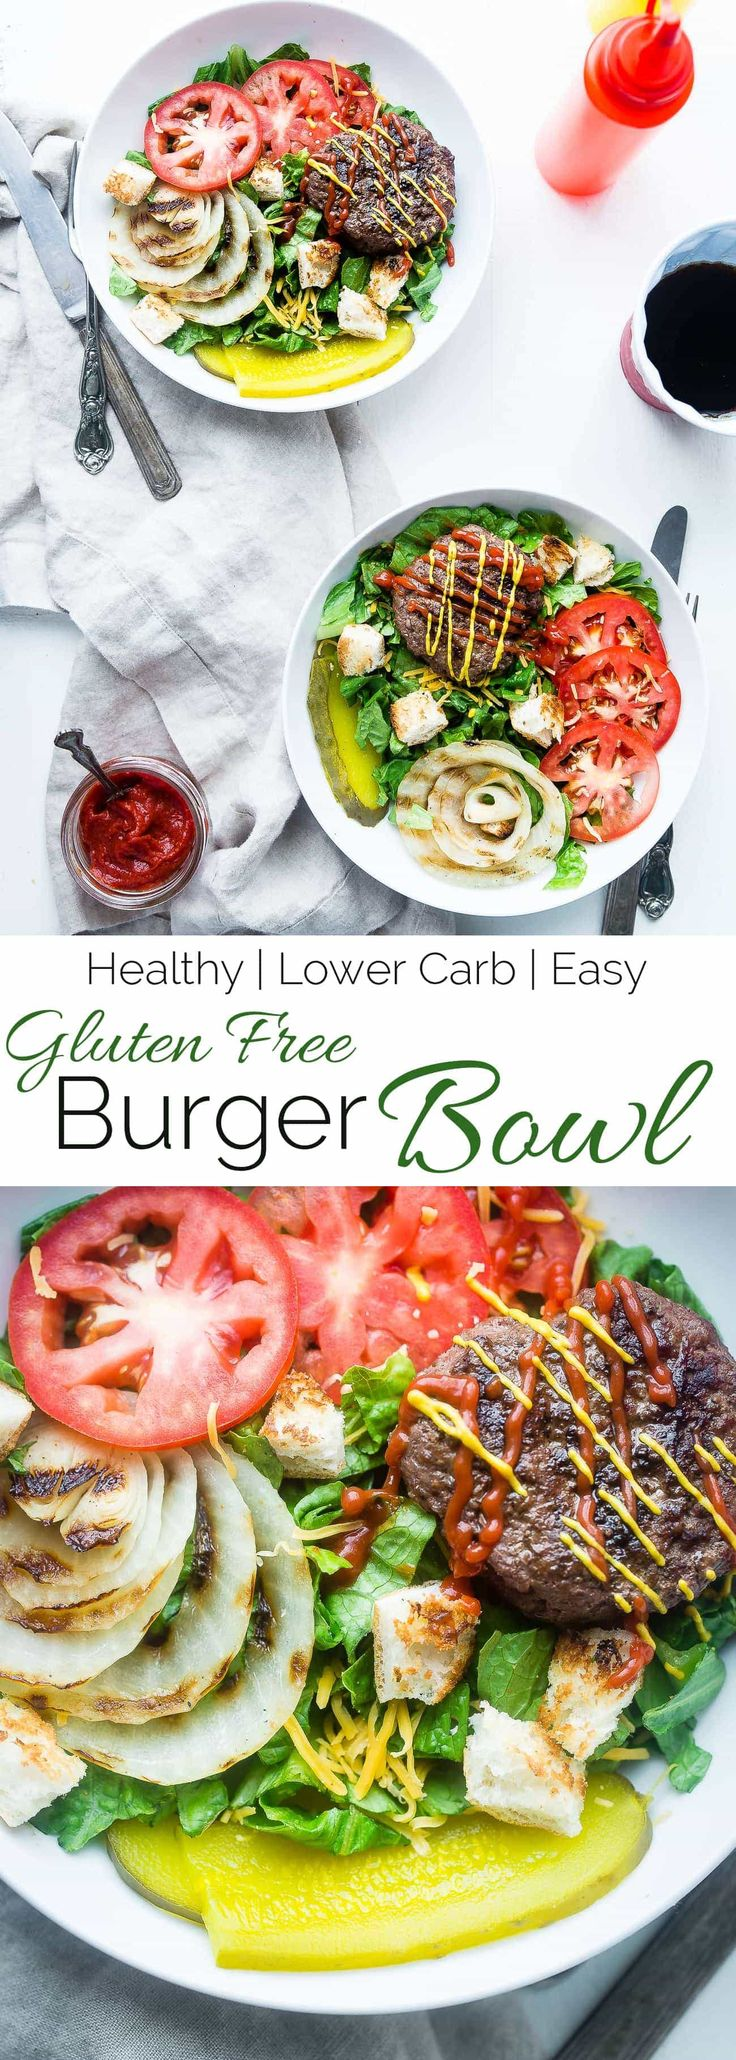 Cheeseburger Salad Bowls - These gluten free cheeseburger salad bowls are a healthy, lighter way to get your burger fix this Summer! They're a healthy meal that the whole family will love! | Foodfaithfitness.com | @FoodFaithFit via @FoodFaithFit